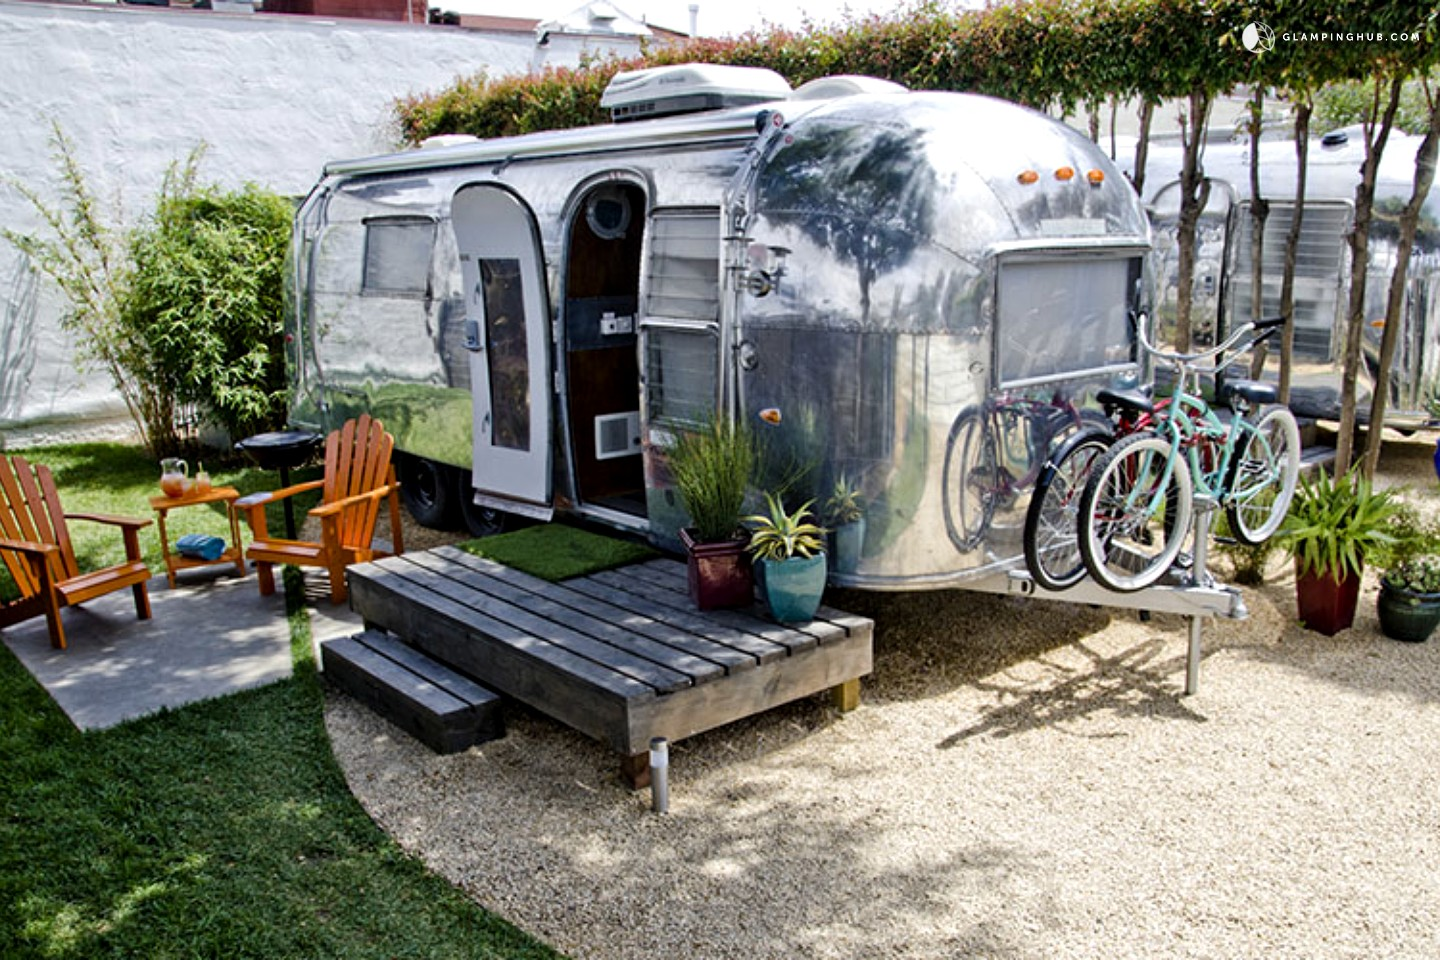 airstream trailers for rent near santa barbara